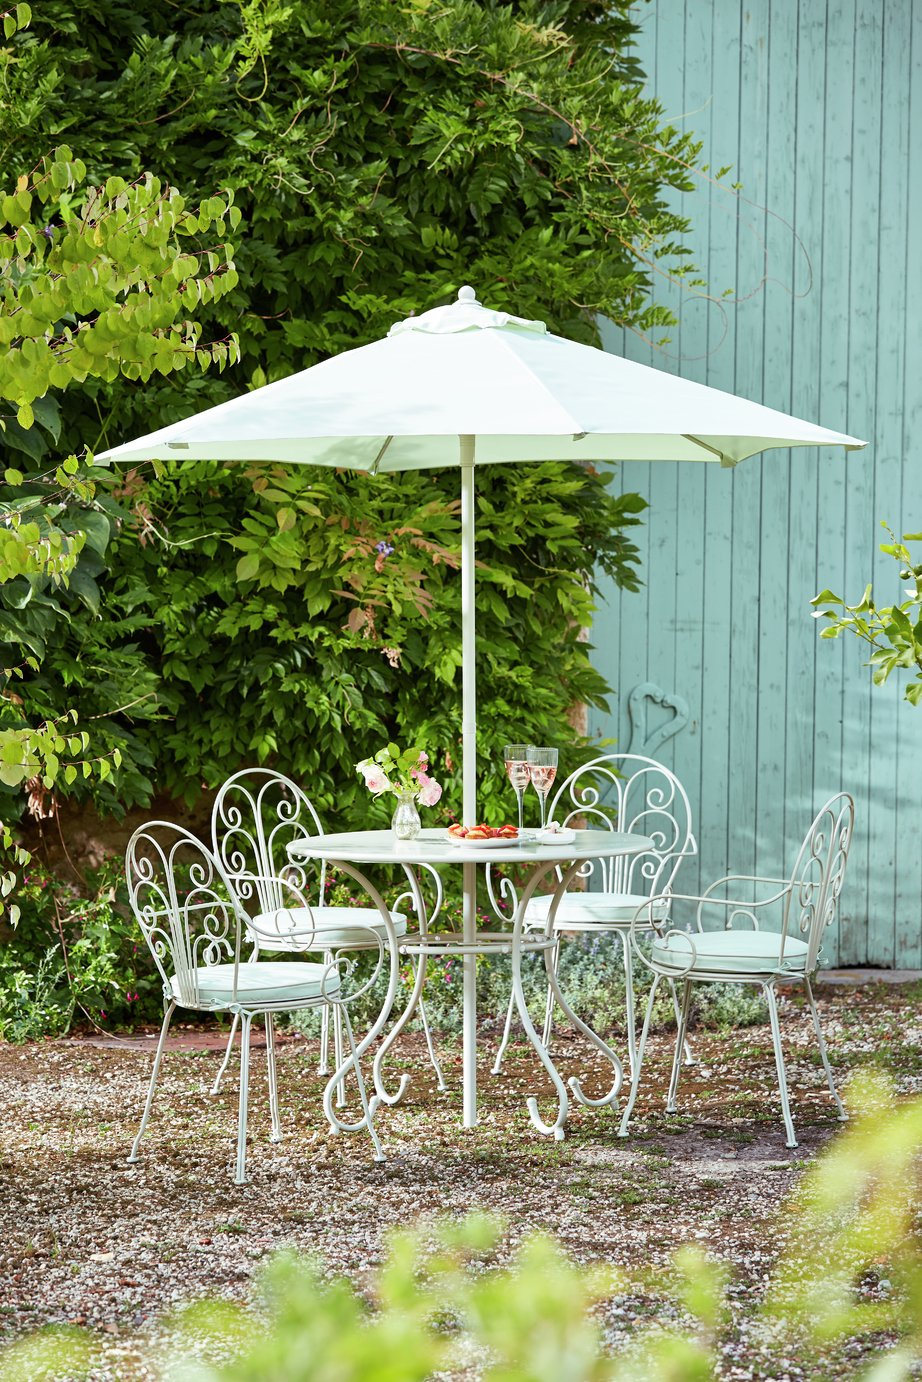 Garden Furniture 4 Seater buy heart of house jasmin 4 seater patio furniture set at argos.co